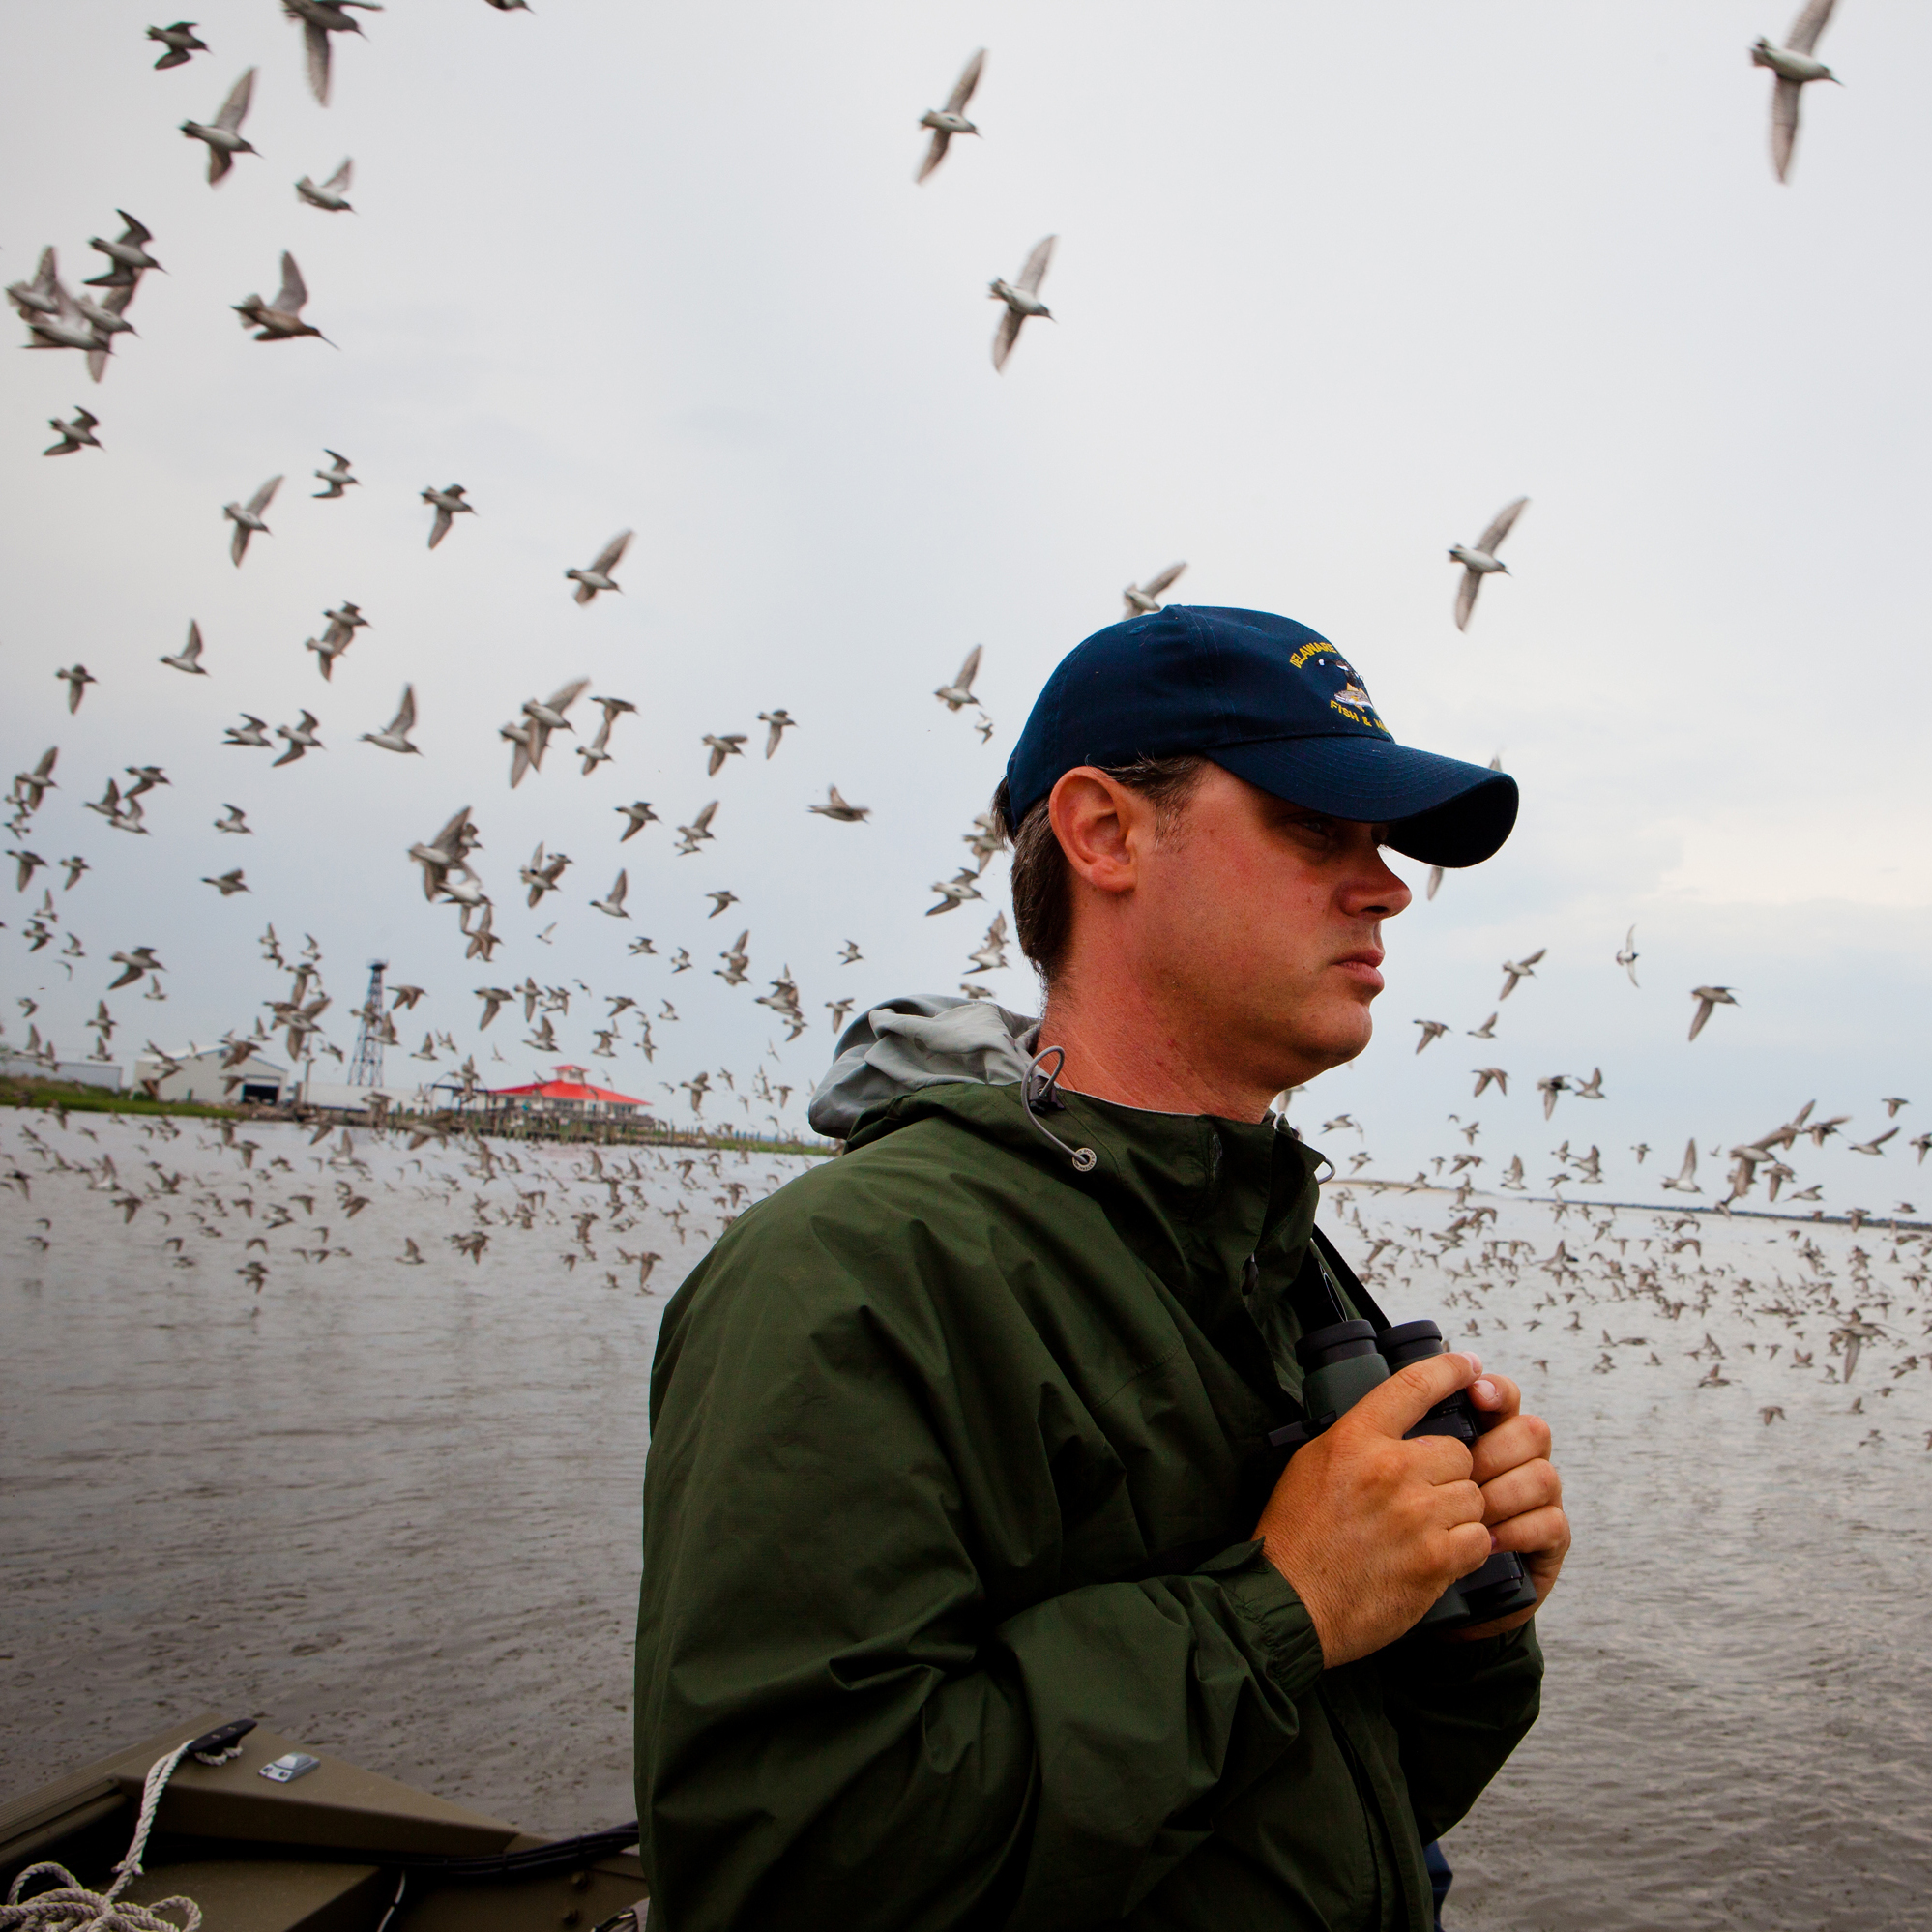 Kevin Kalasz, a biologist with the shorebird project, on the lookout for red knots amid the gulls and other birds.